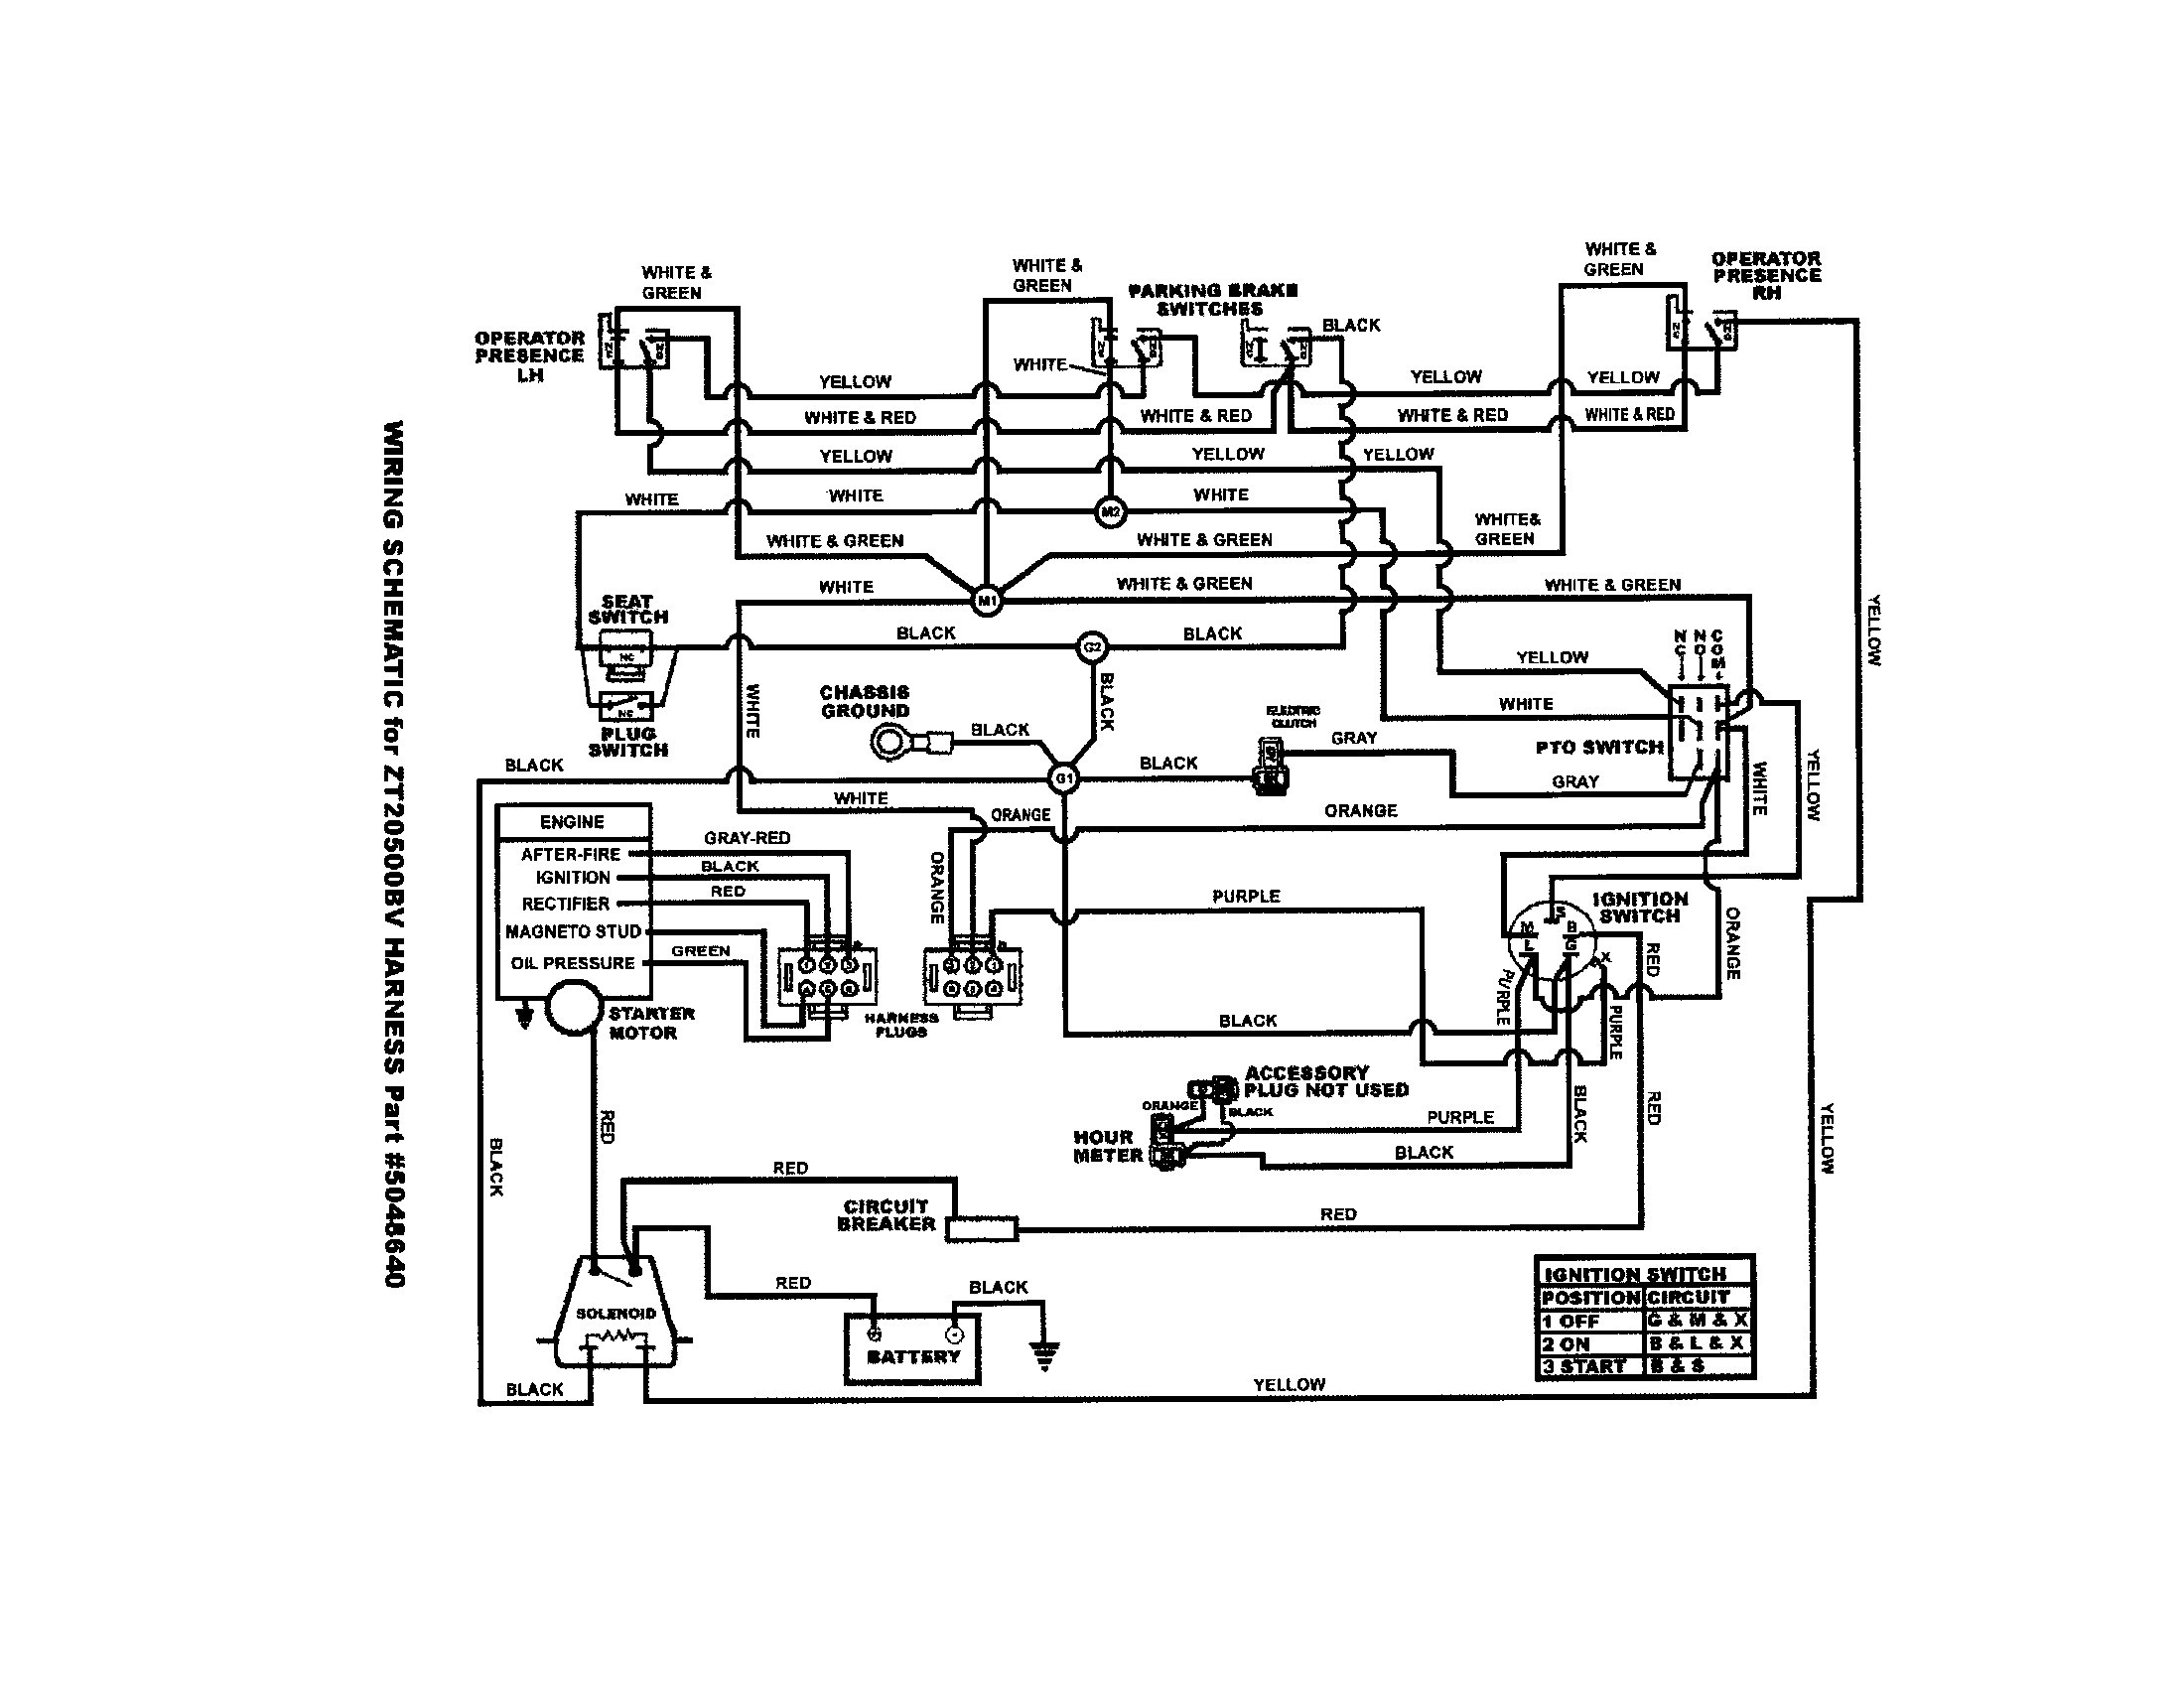 Kohler Engine Ignition Switch Wiring | Wiring Library - Kohler Command Wiring Diagram